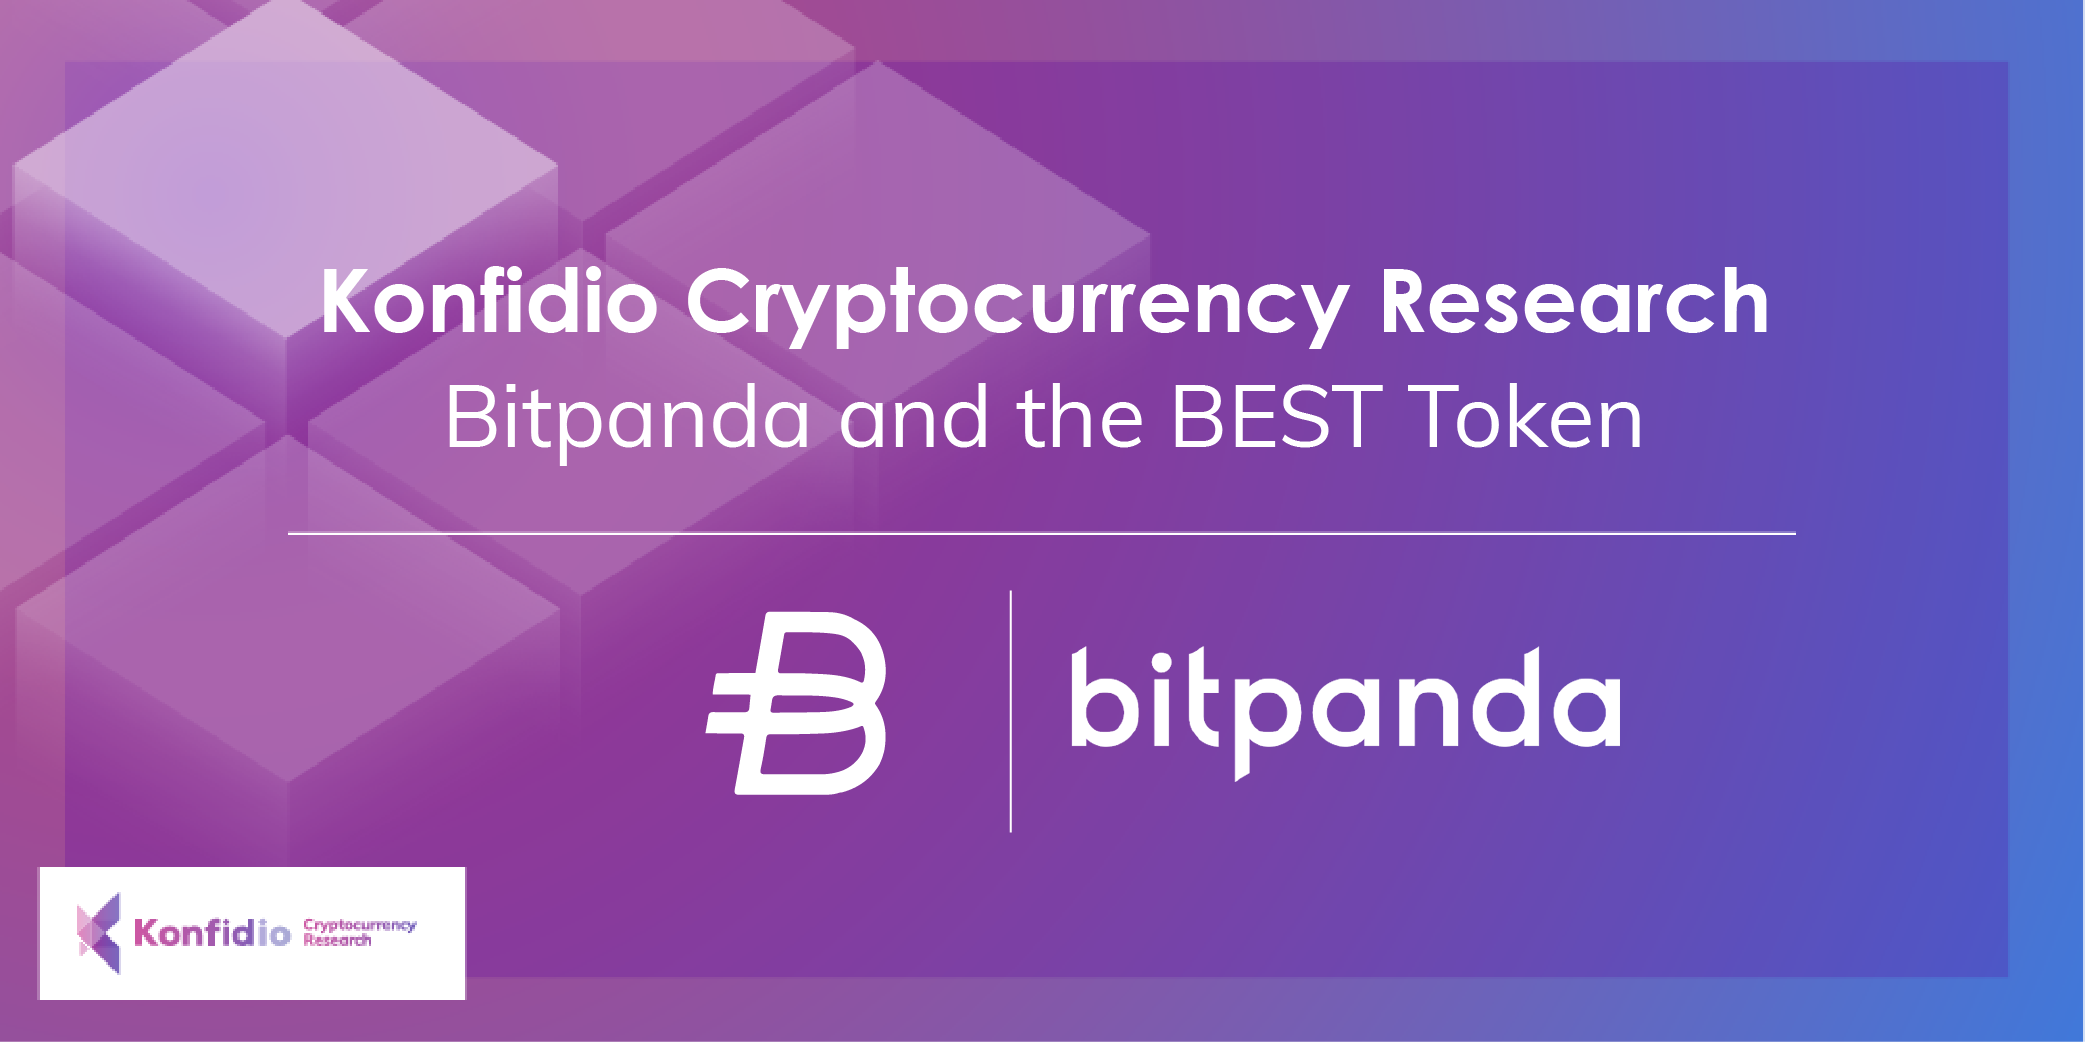 Bitpanda and the BEST Token